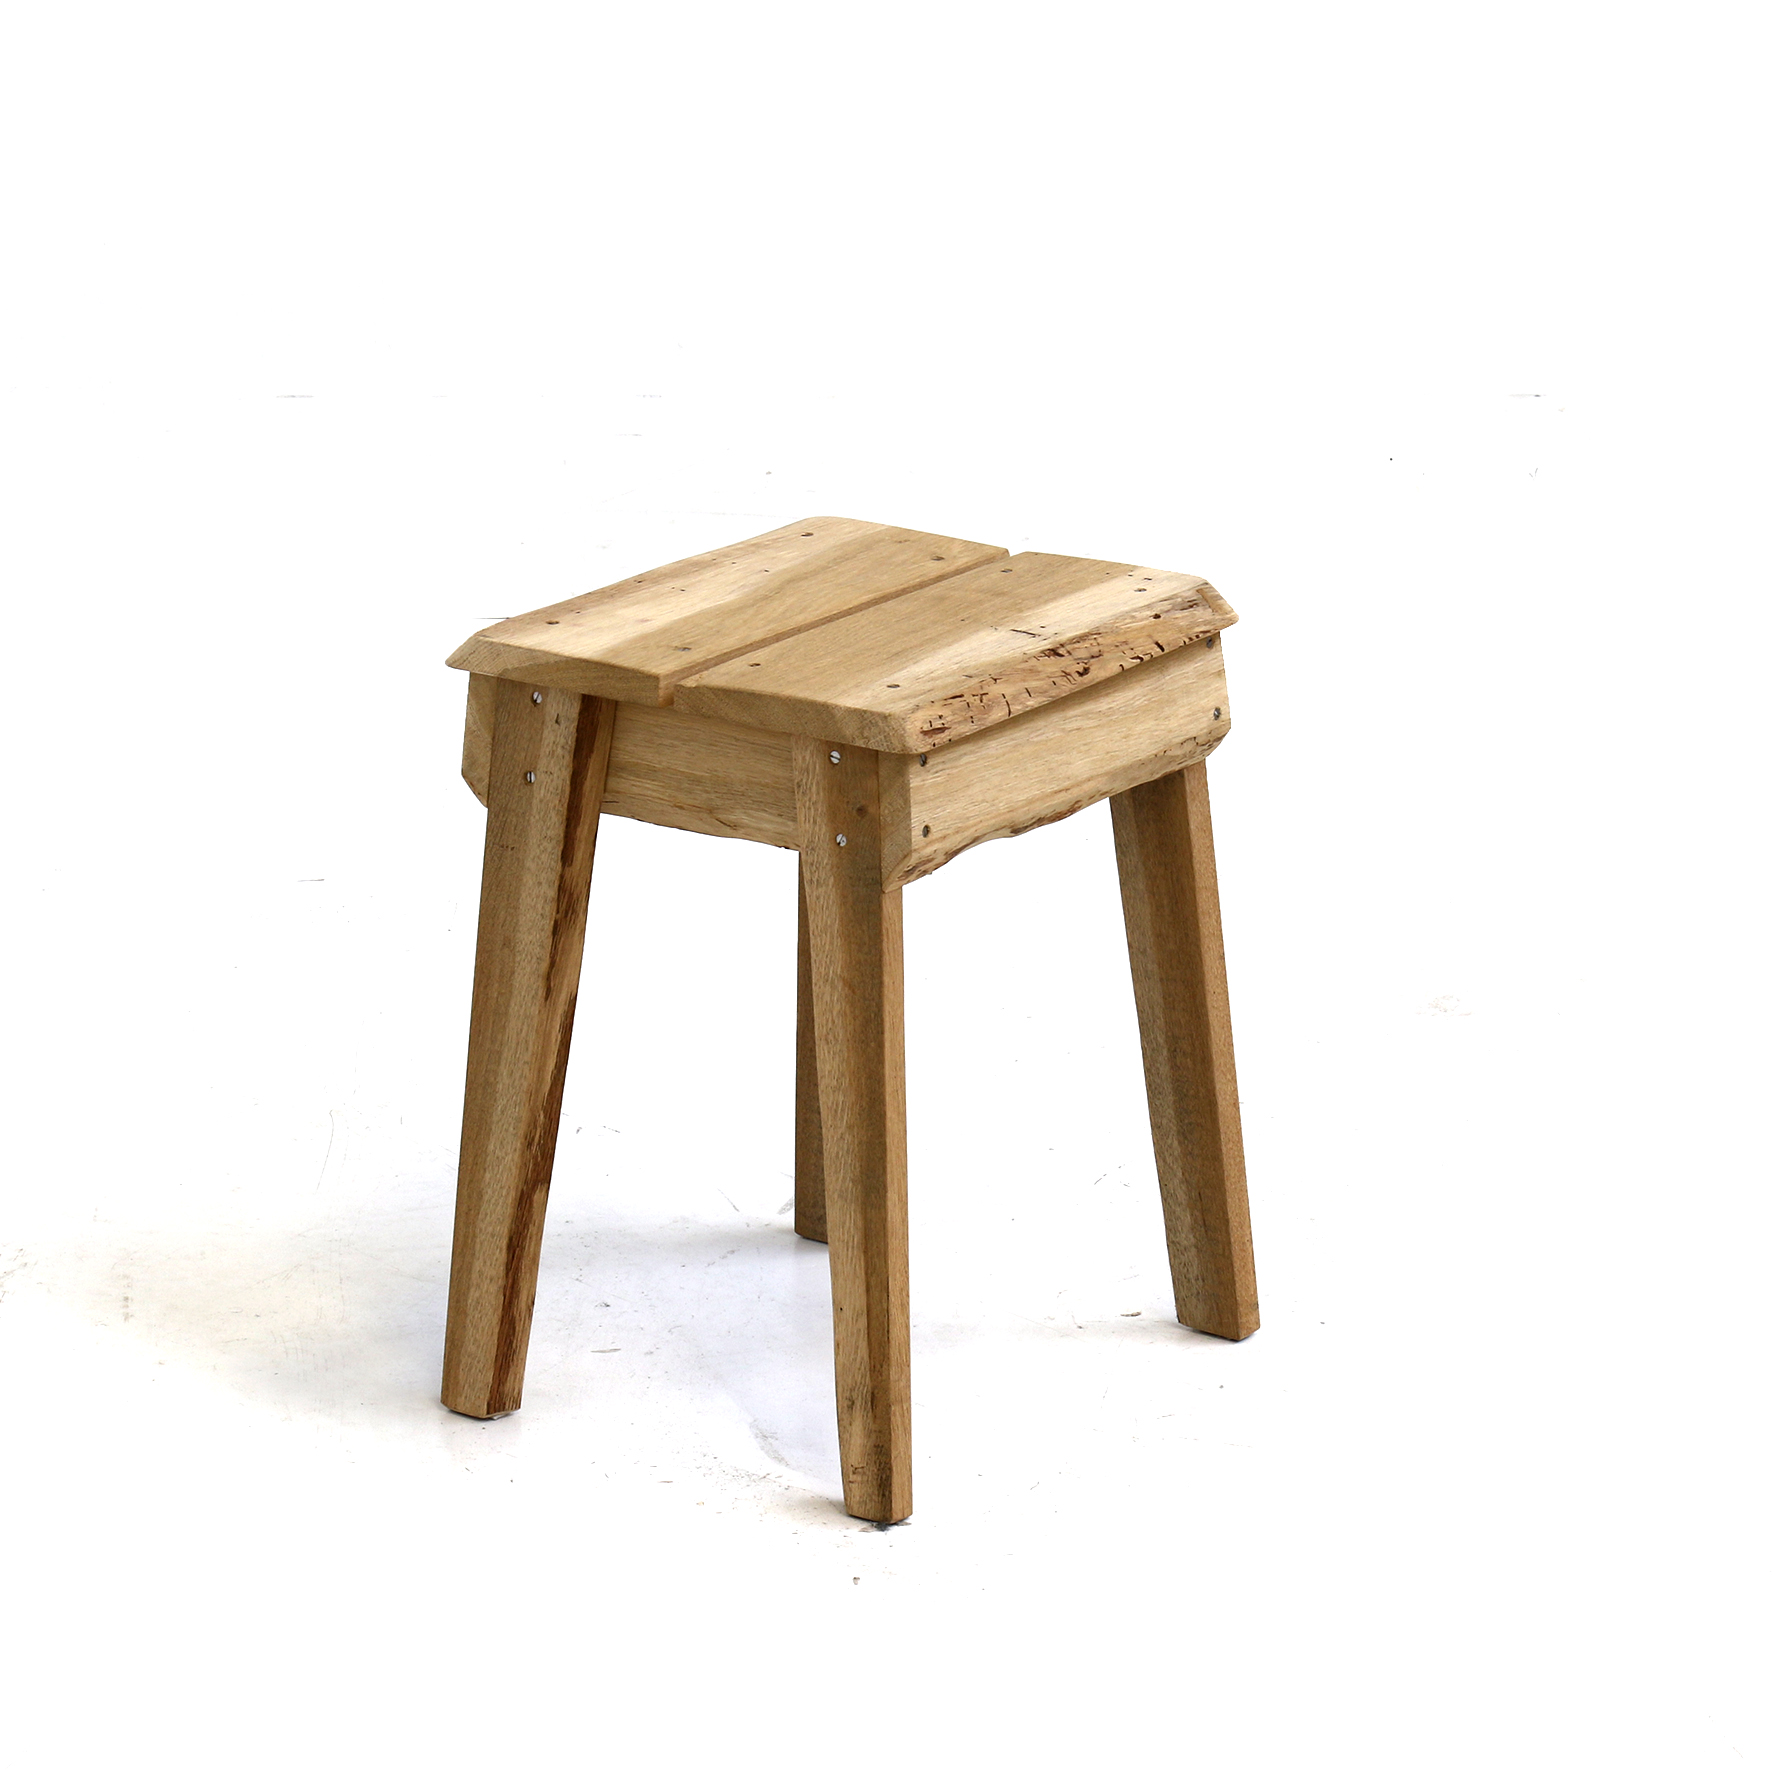 boomstamkruk - tree trunk stool